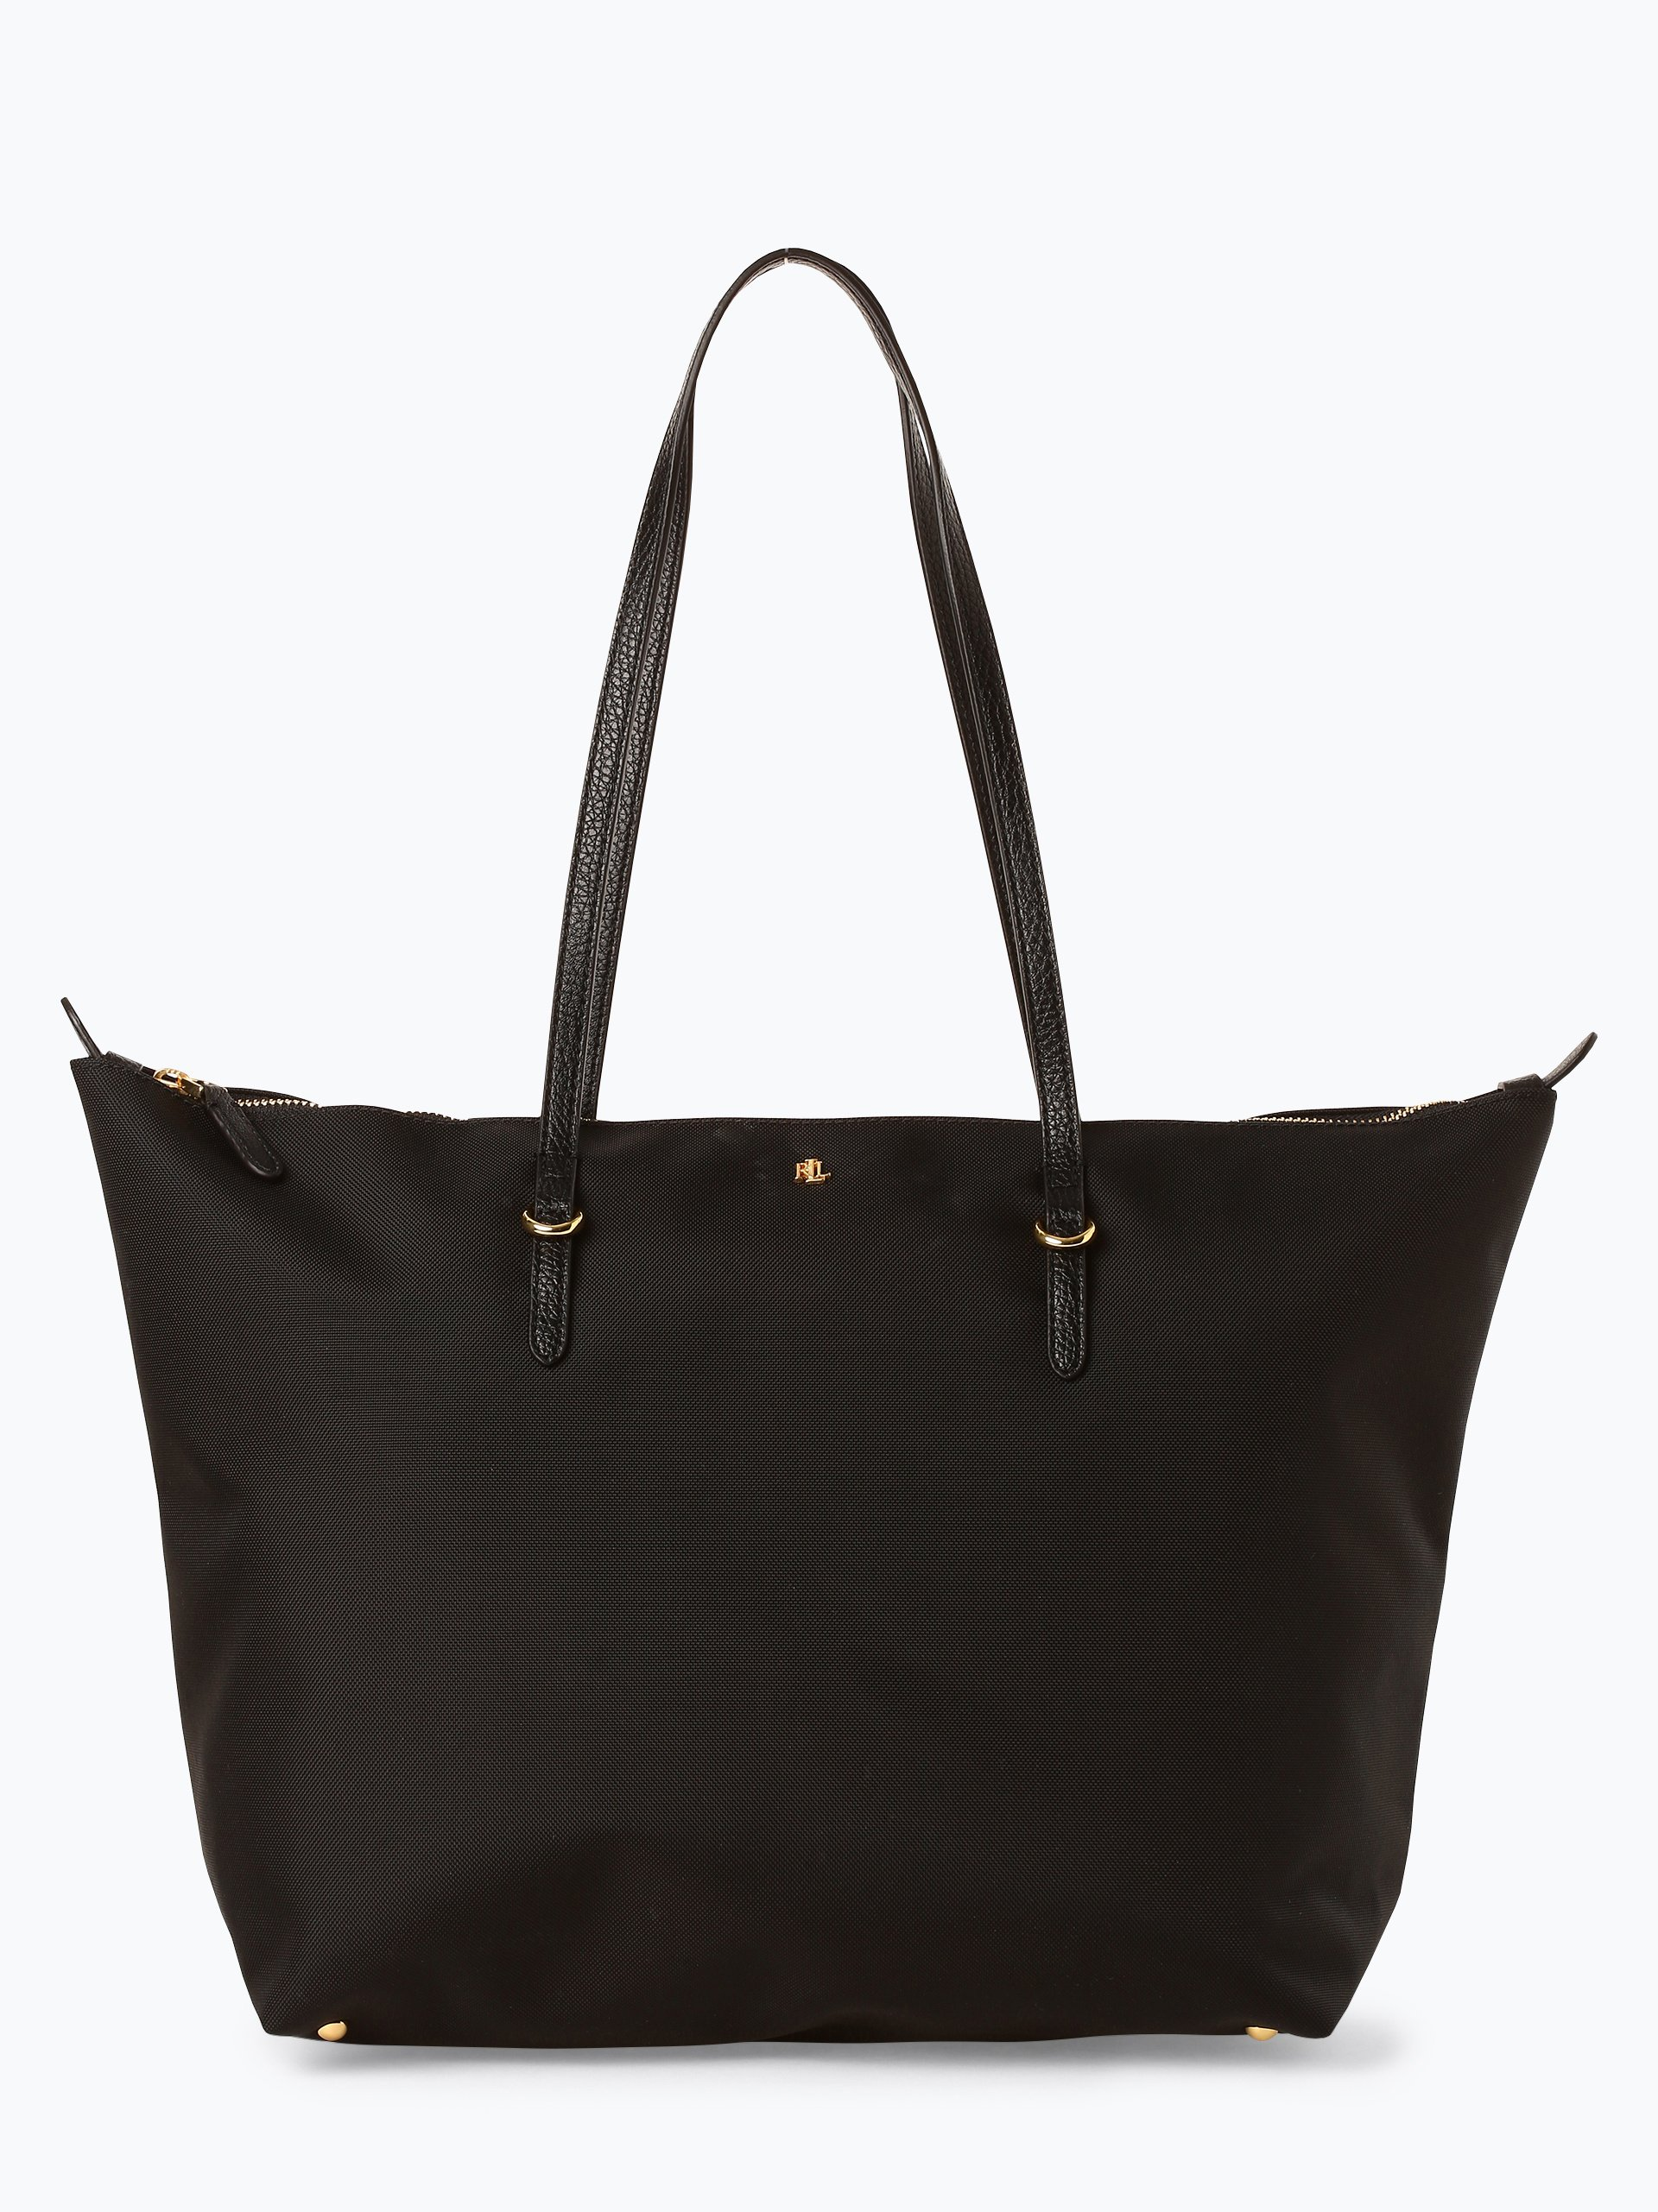 LAUREN RALPH LAUREN Damen Shopper